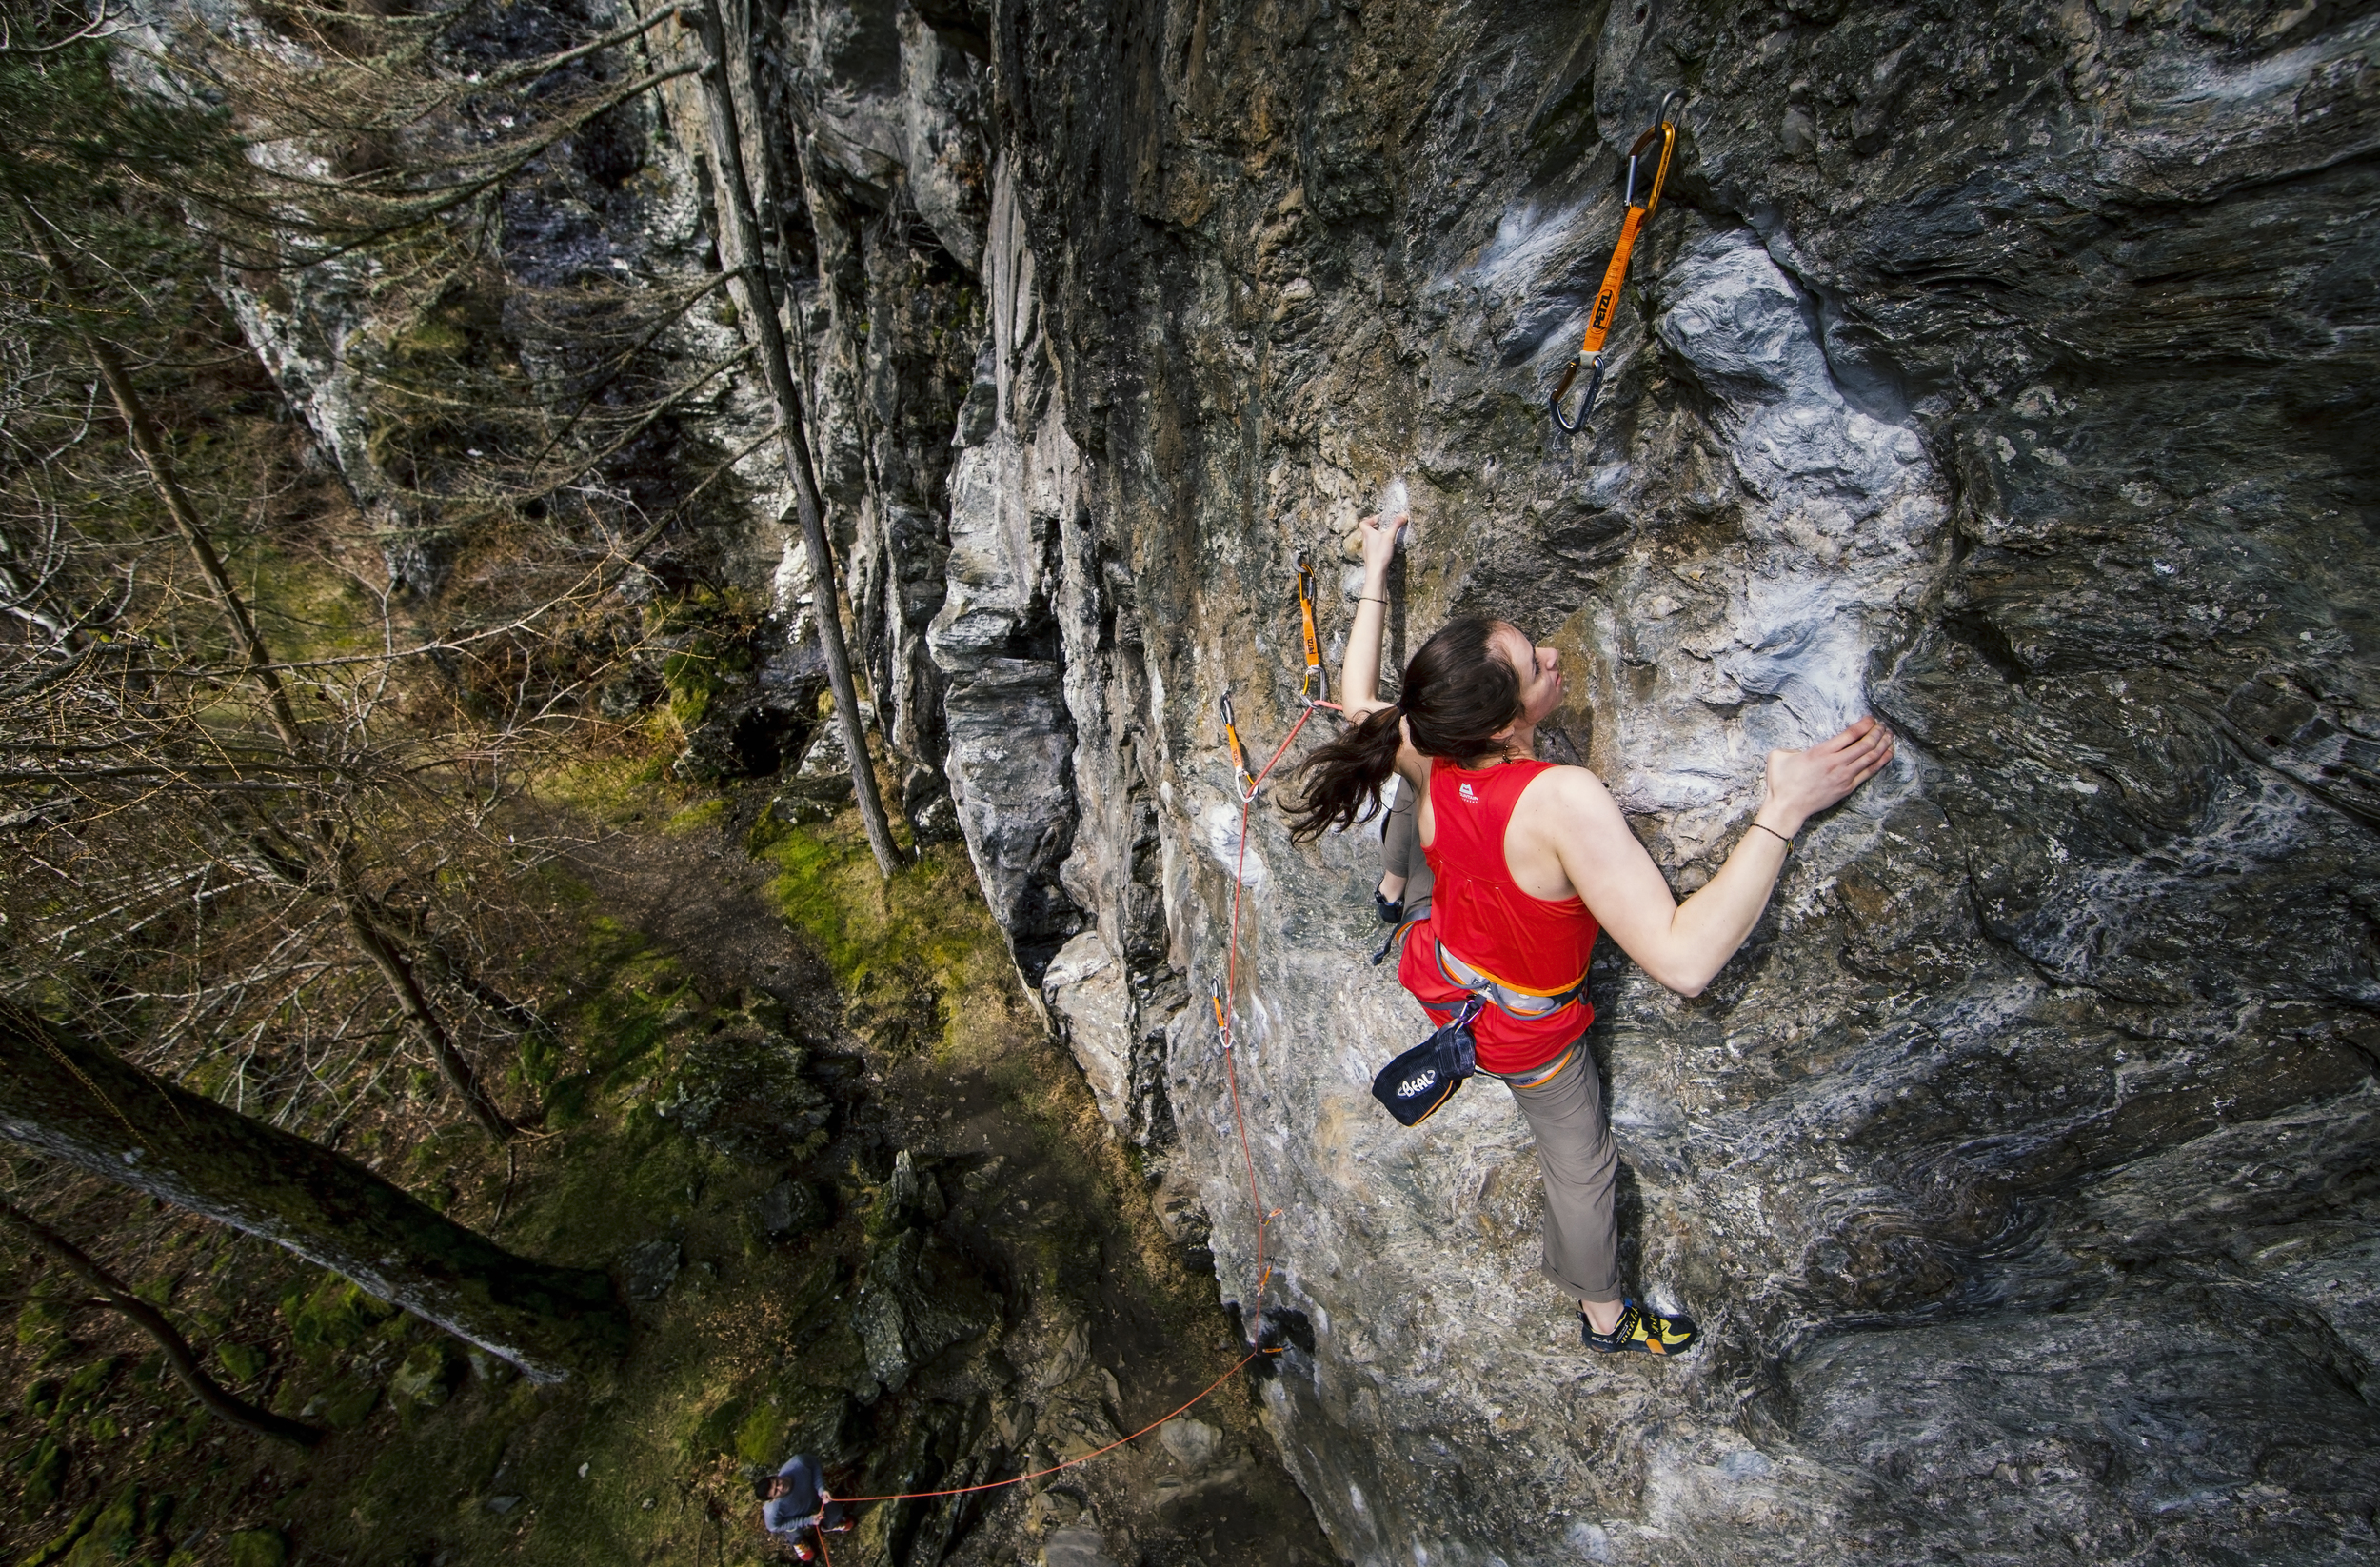 Natalie Berry on the classic 'Hamish Teddy's Excellent Adventure' at Dunkeld. Shot with Canon 6D + Canon 14mm f2.8 + LEE Filters 0.6 Soft Grad ND (held over lens!).